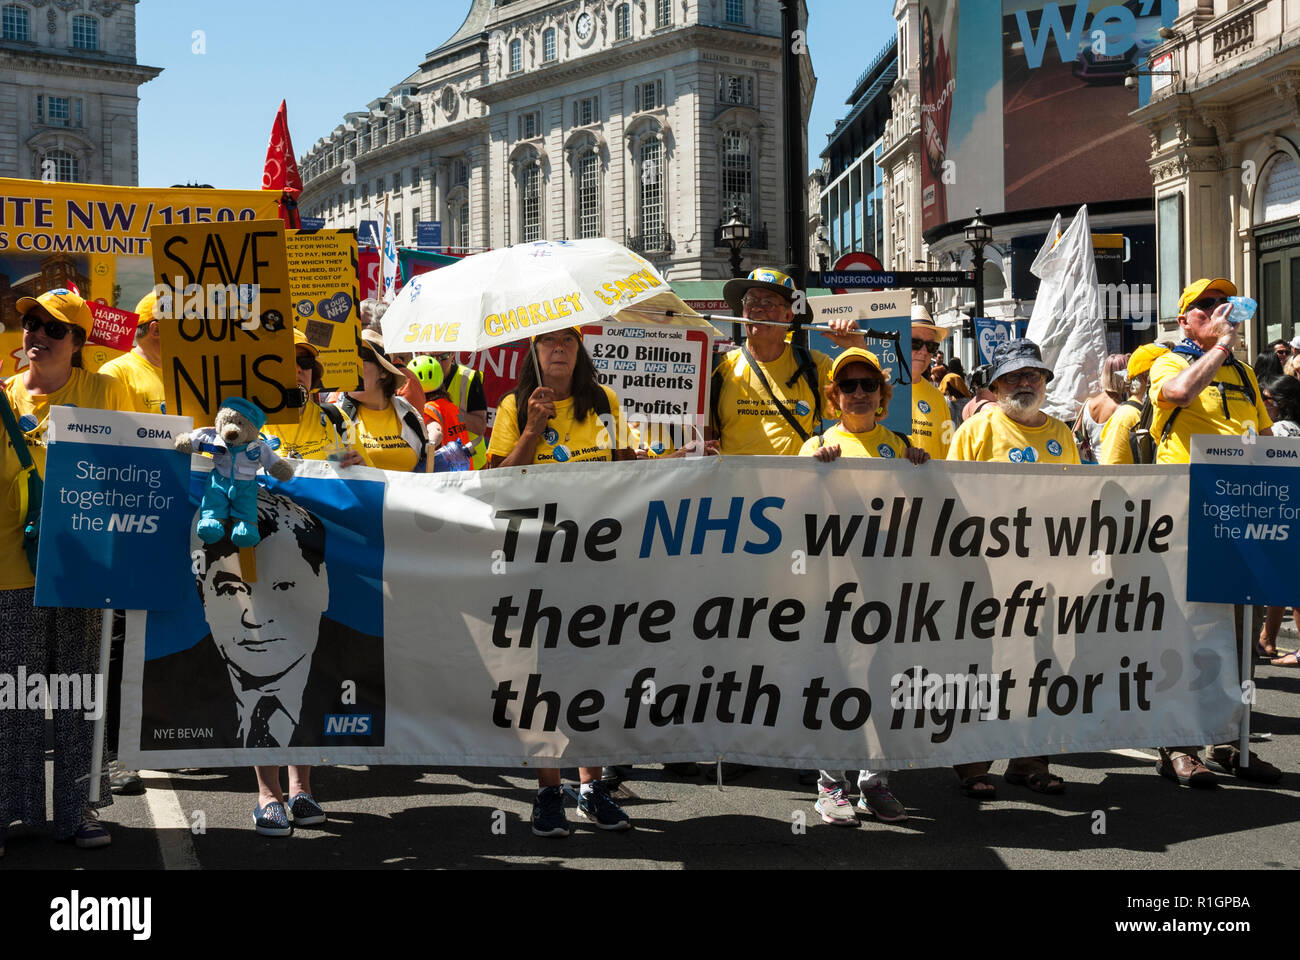 70th anniversary rally and protest against cuts with a banner ' The NHS will last while  there are folk left to fight for it' Aneurin Bevan - Stock Image